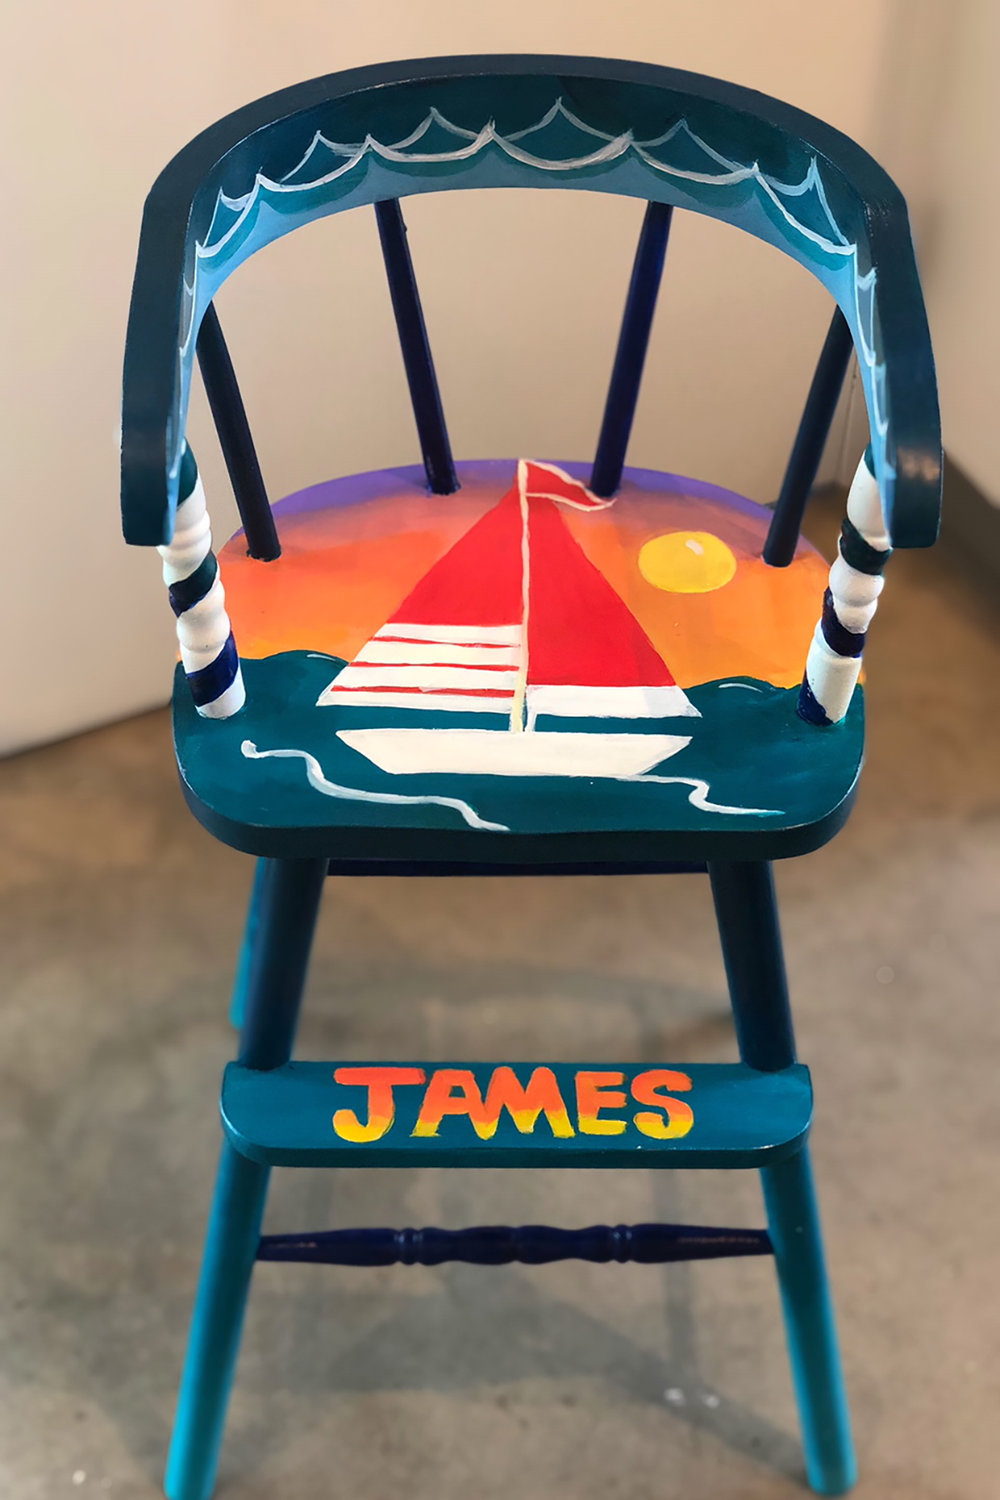 James High Chair_SBrennan.jpg